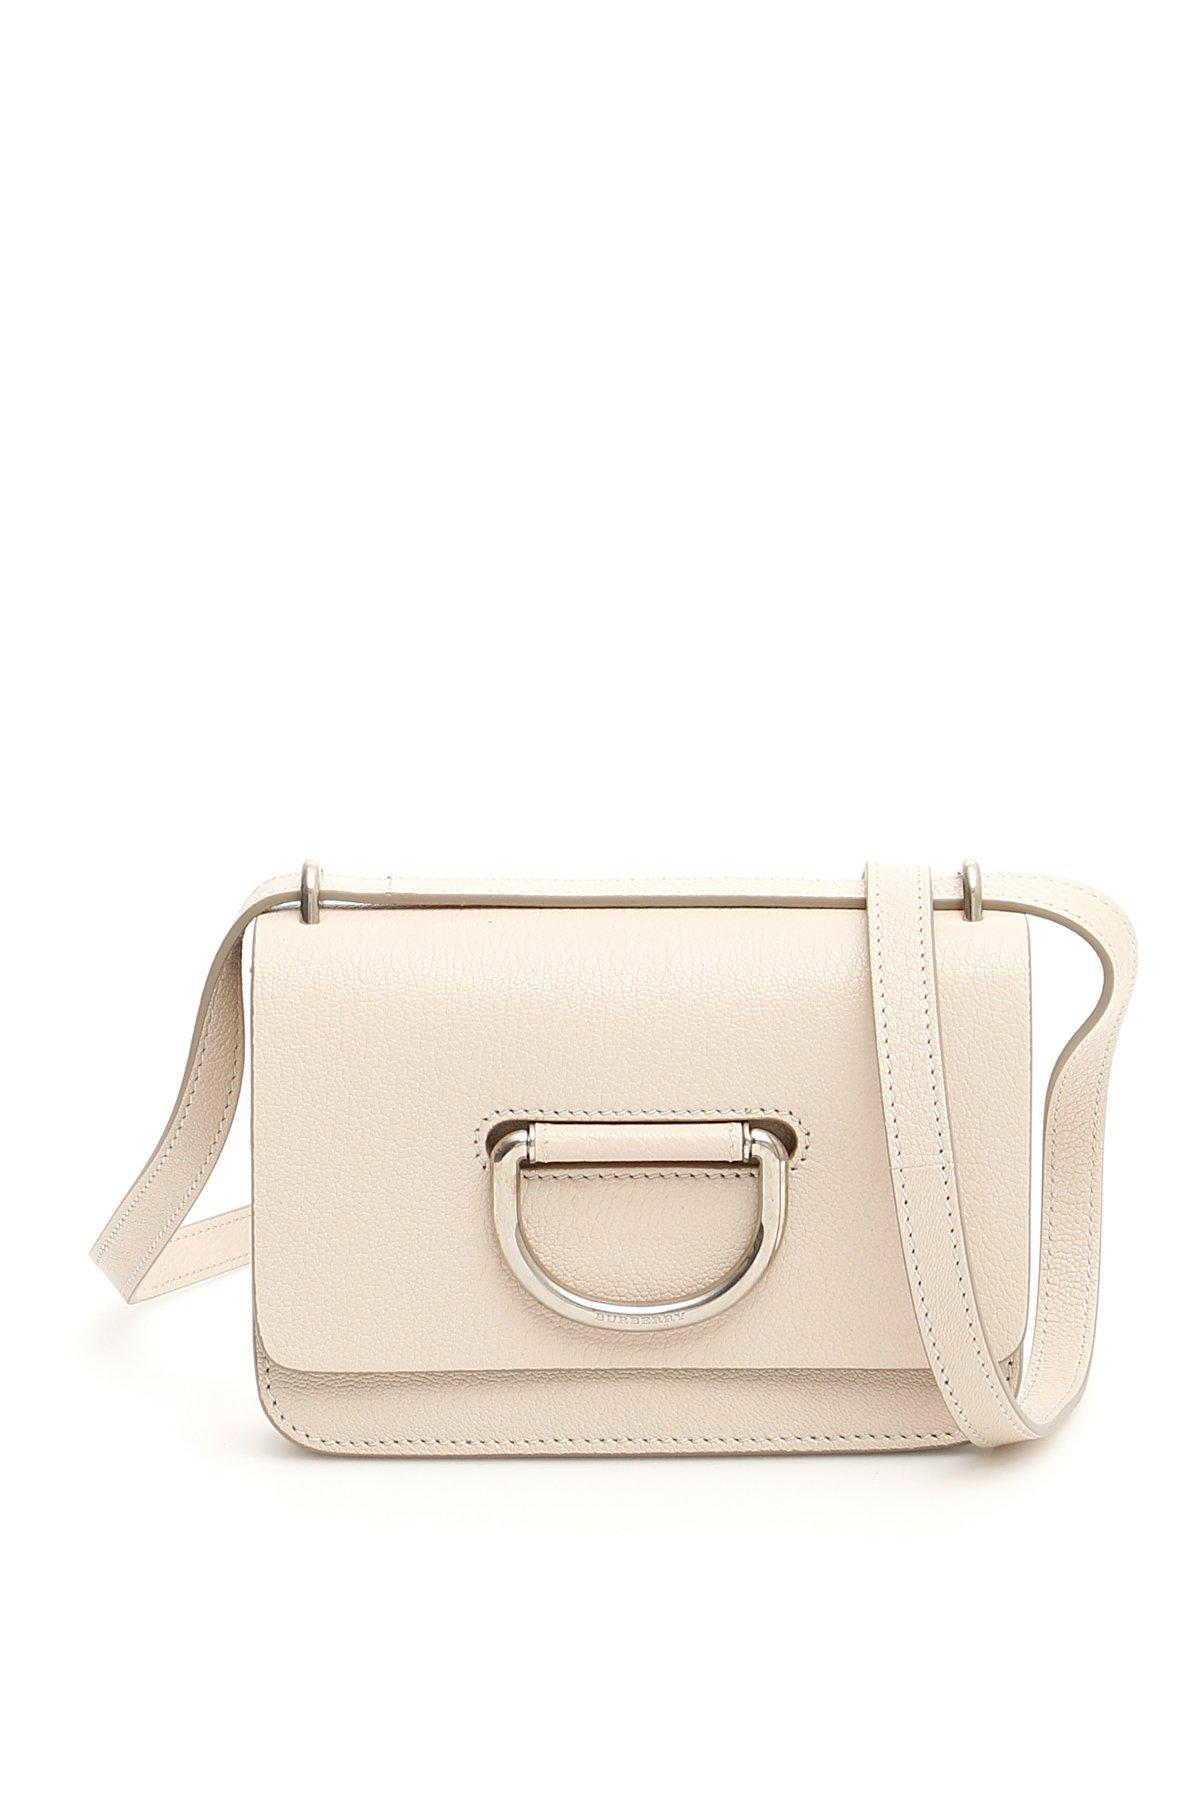 70f5b05f06cd Burberry Mini D Ring Crossbody Bag in Natural - Lyst